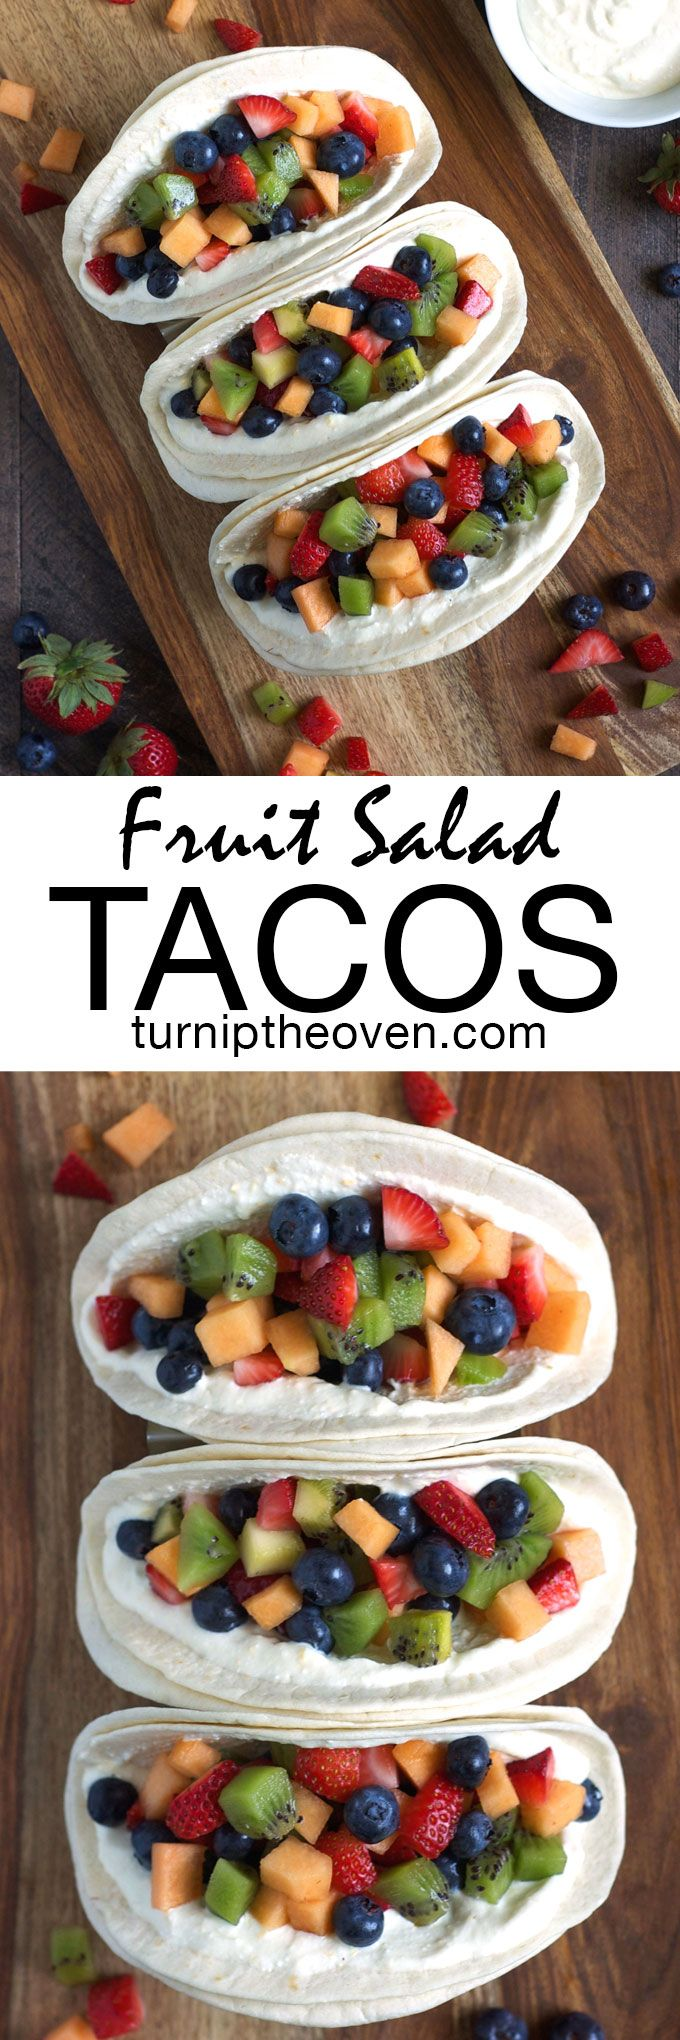 fruit tacos easy healthy fruit salad